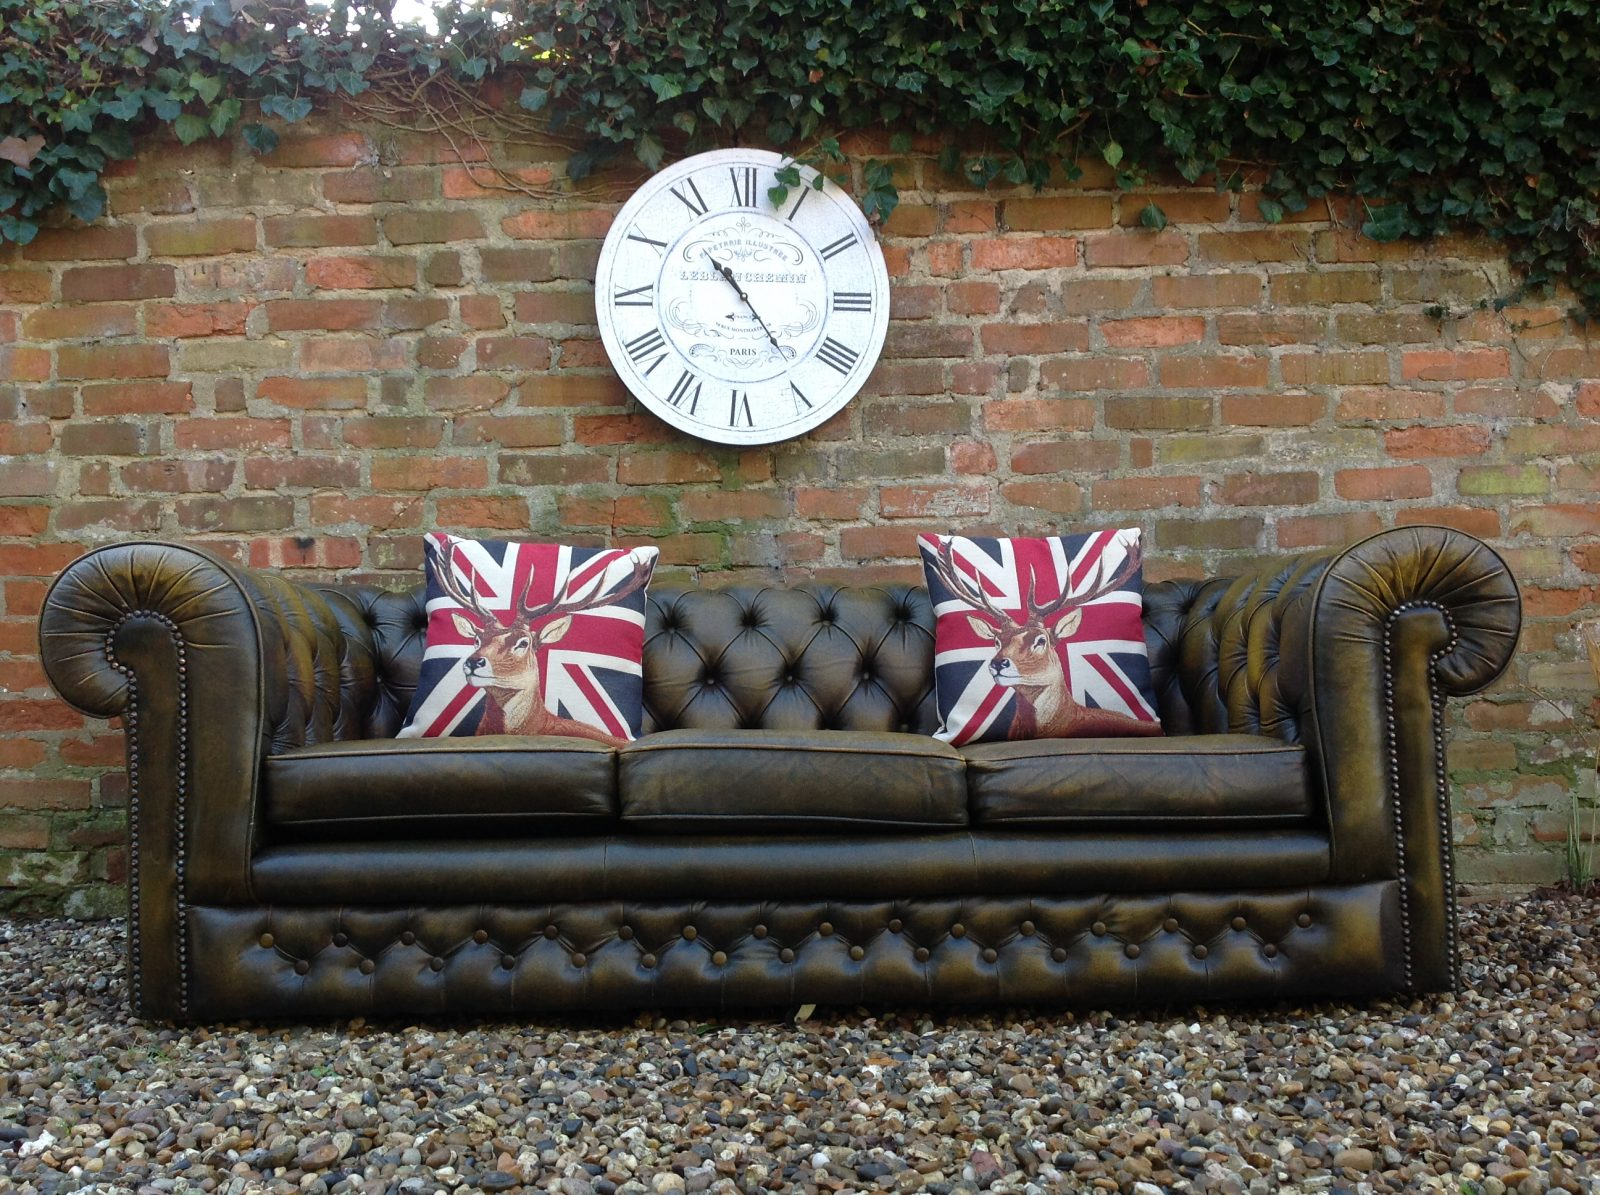 Fantastic Vintage Chesterfield Sofa.